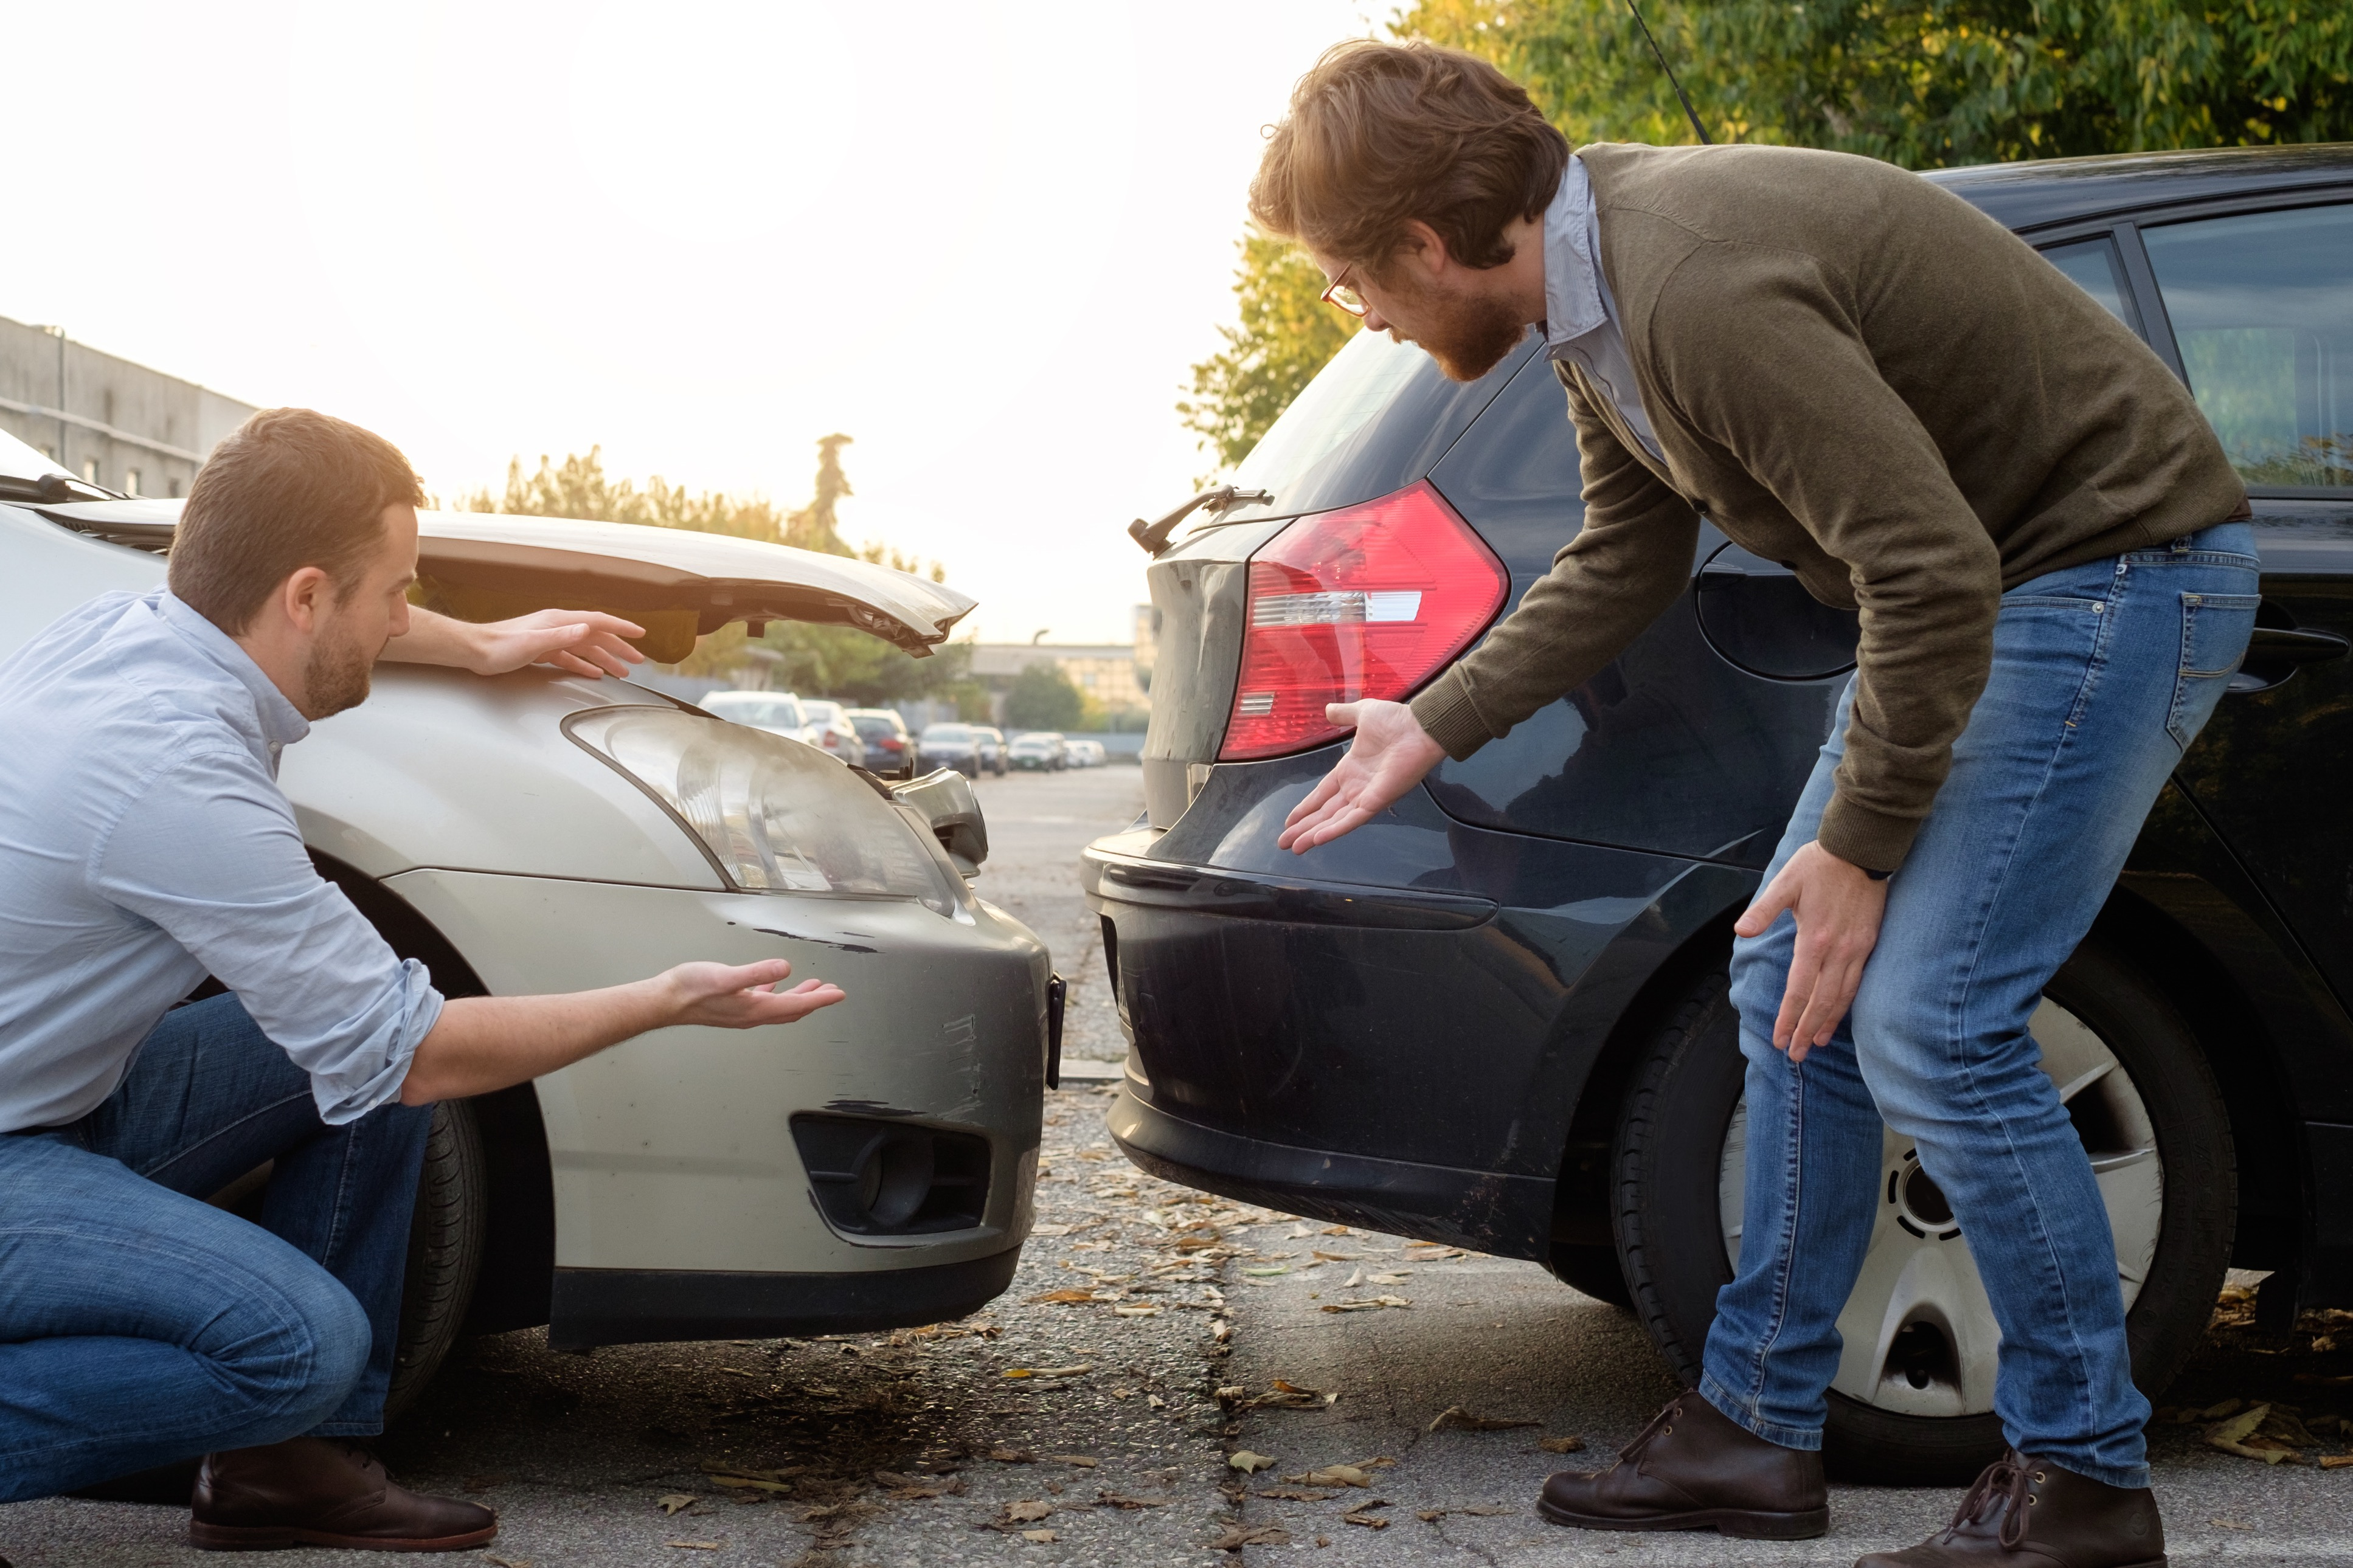 What are the best ways to support your car accident claim?